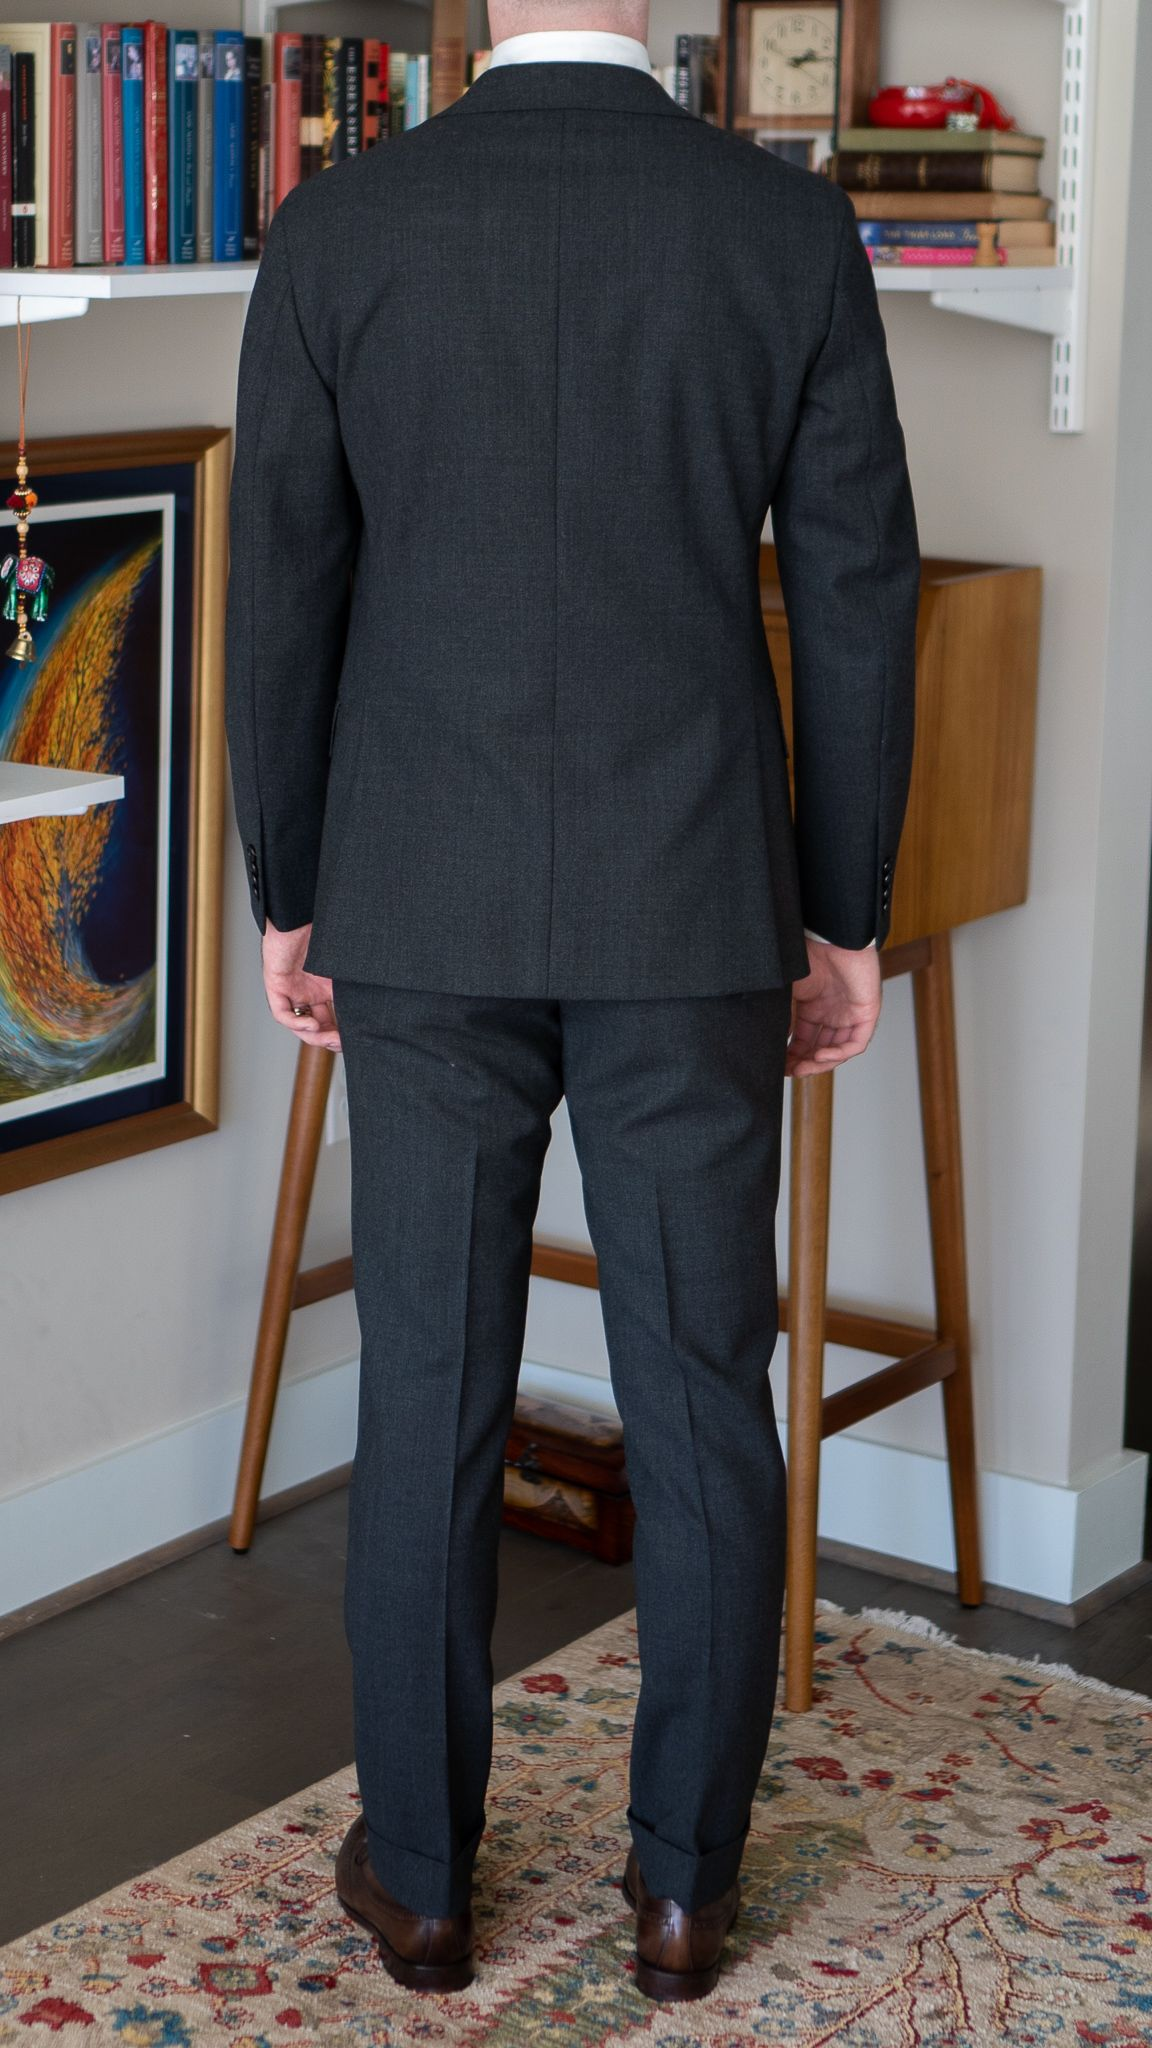 Full-length back view of A Rake in Progress wearing the Cavour gray winter hightwist suit